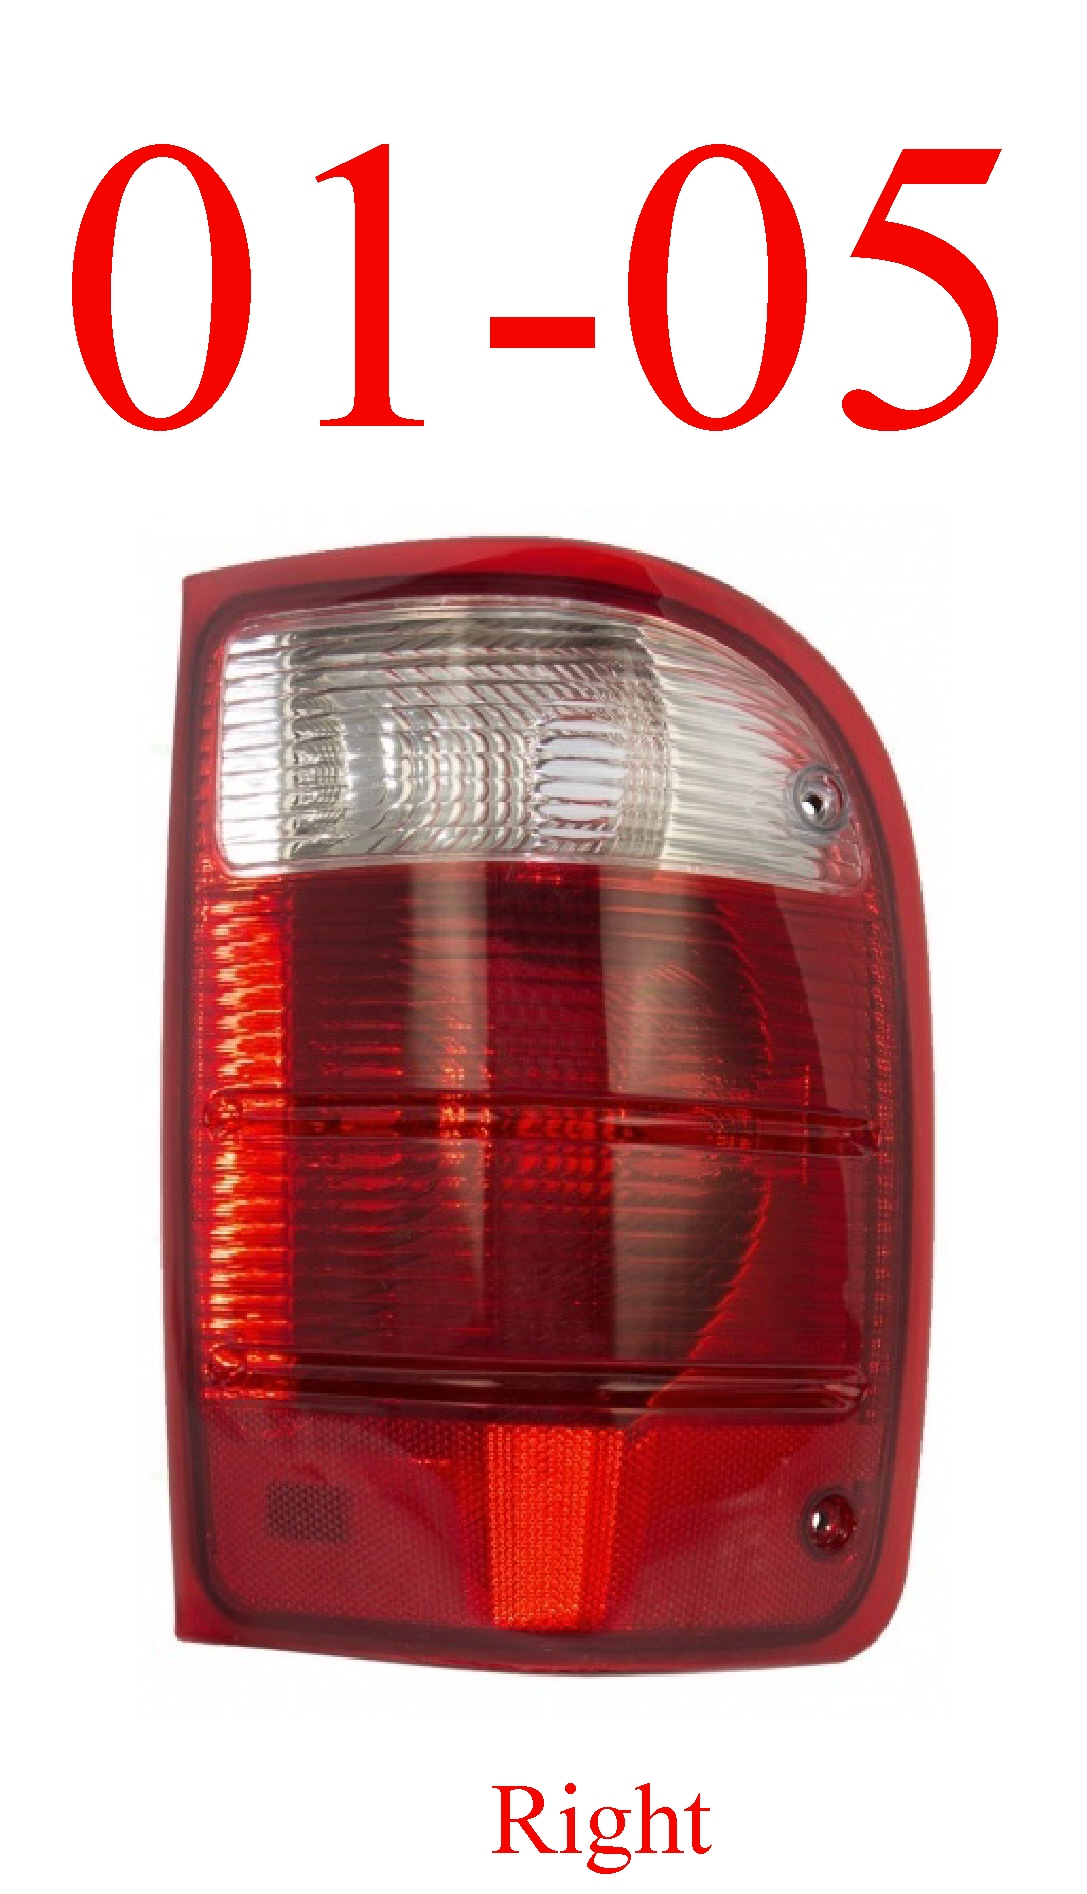 01-05 Ranger Right Tail Light Assembly